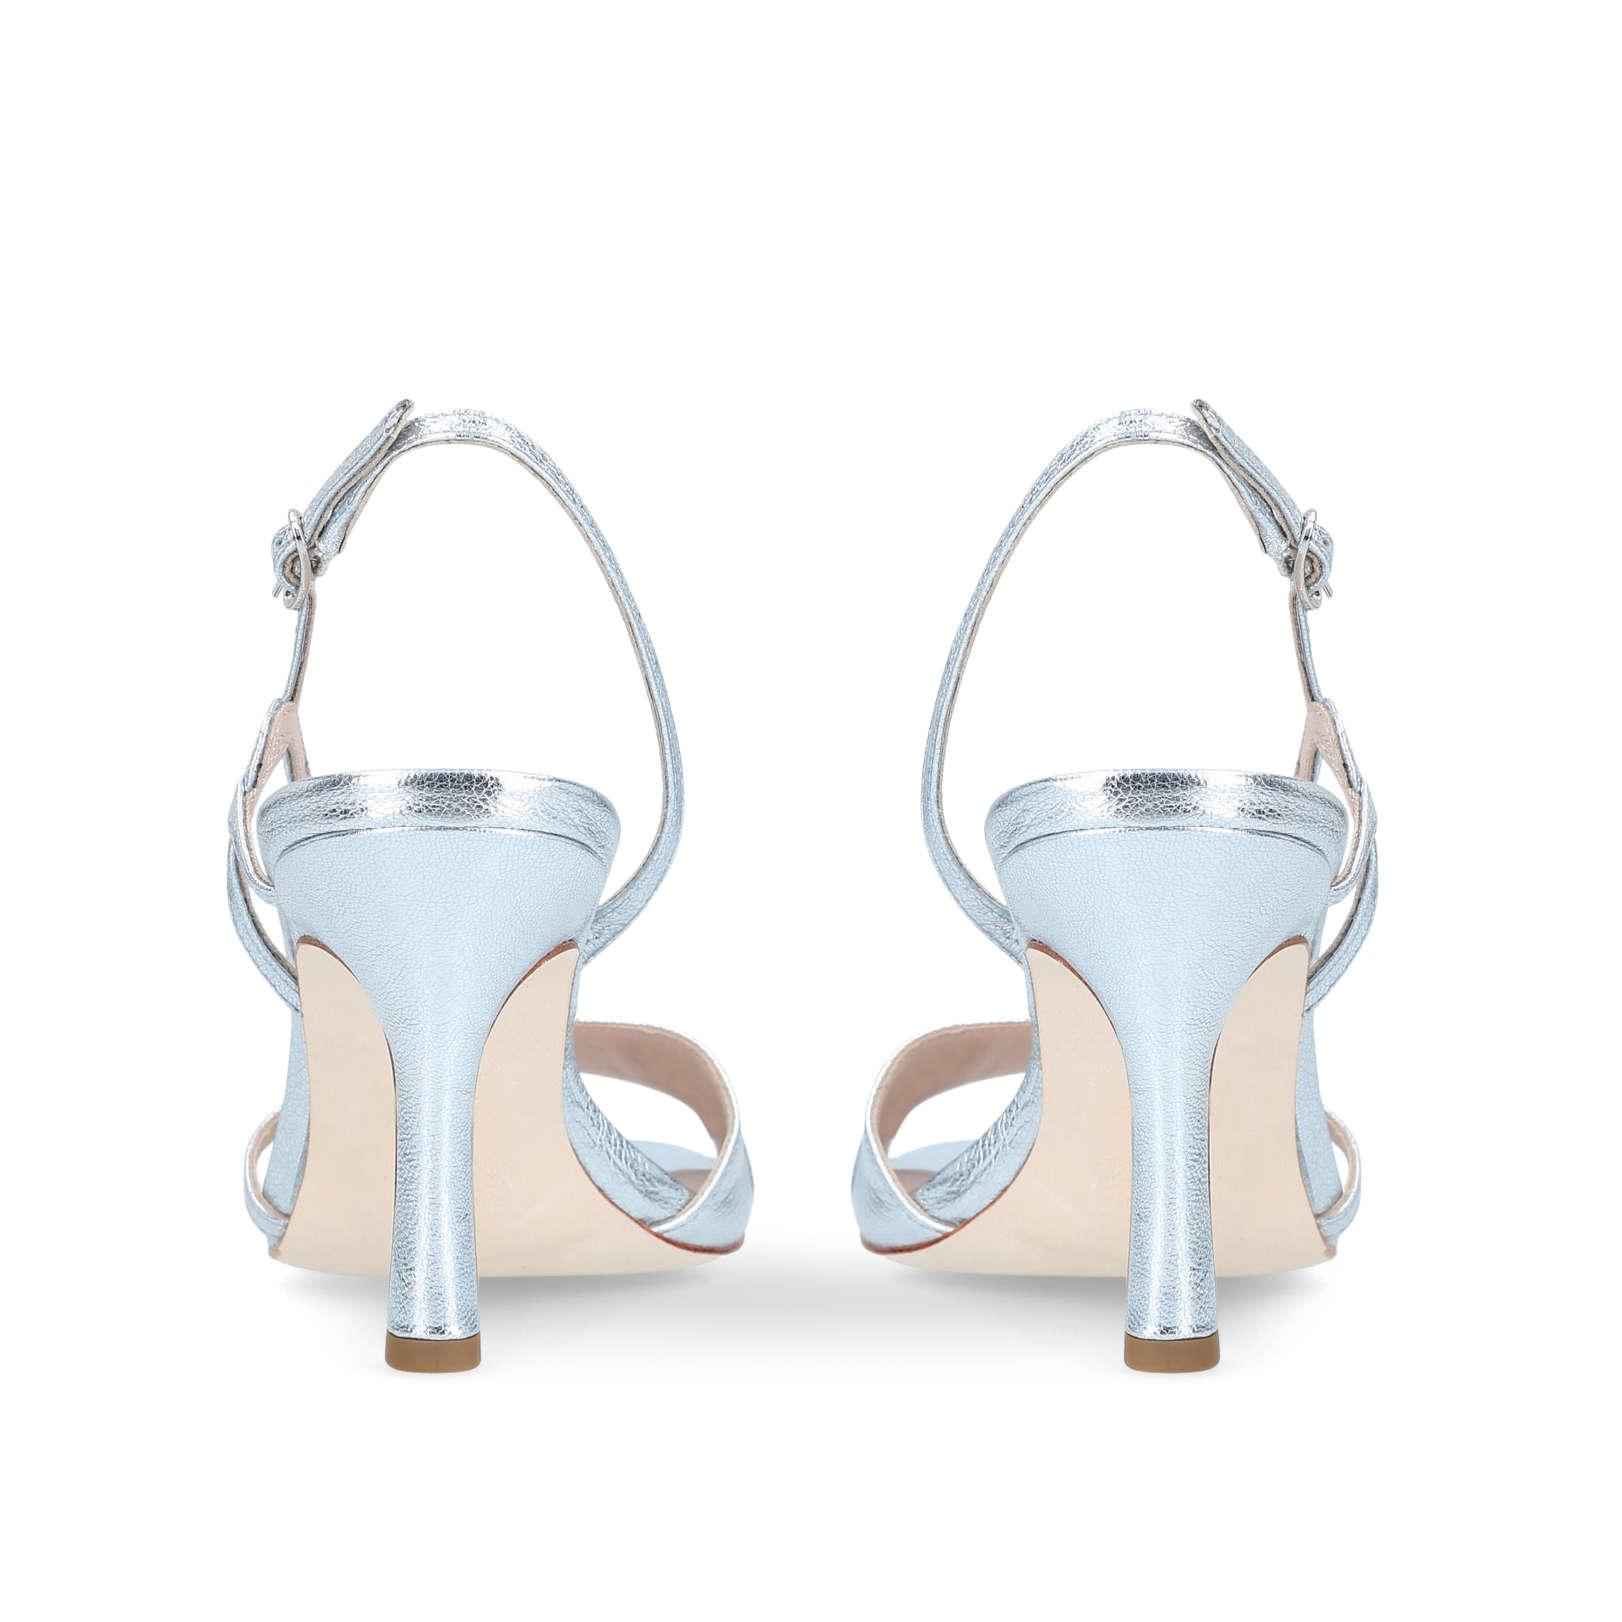 feb568ae5635 Nine West Accolia in Metallic - Lyst